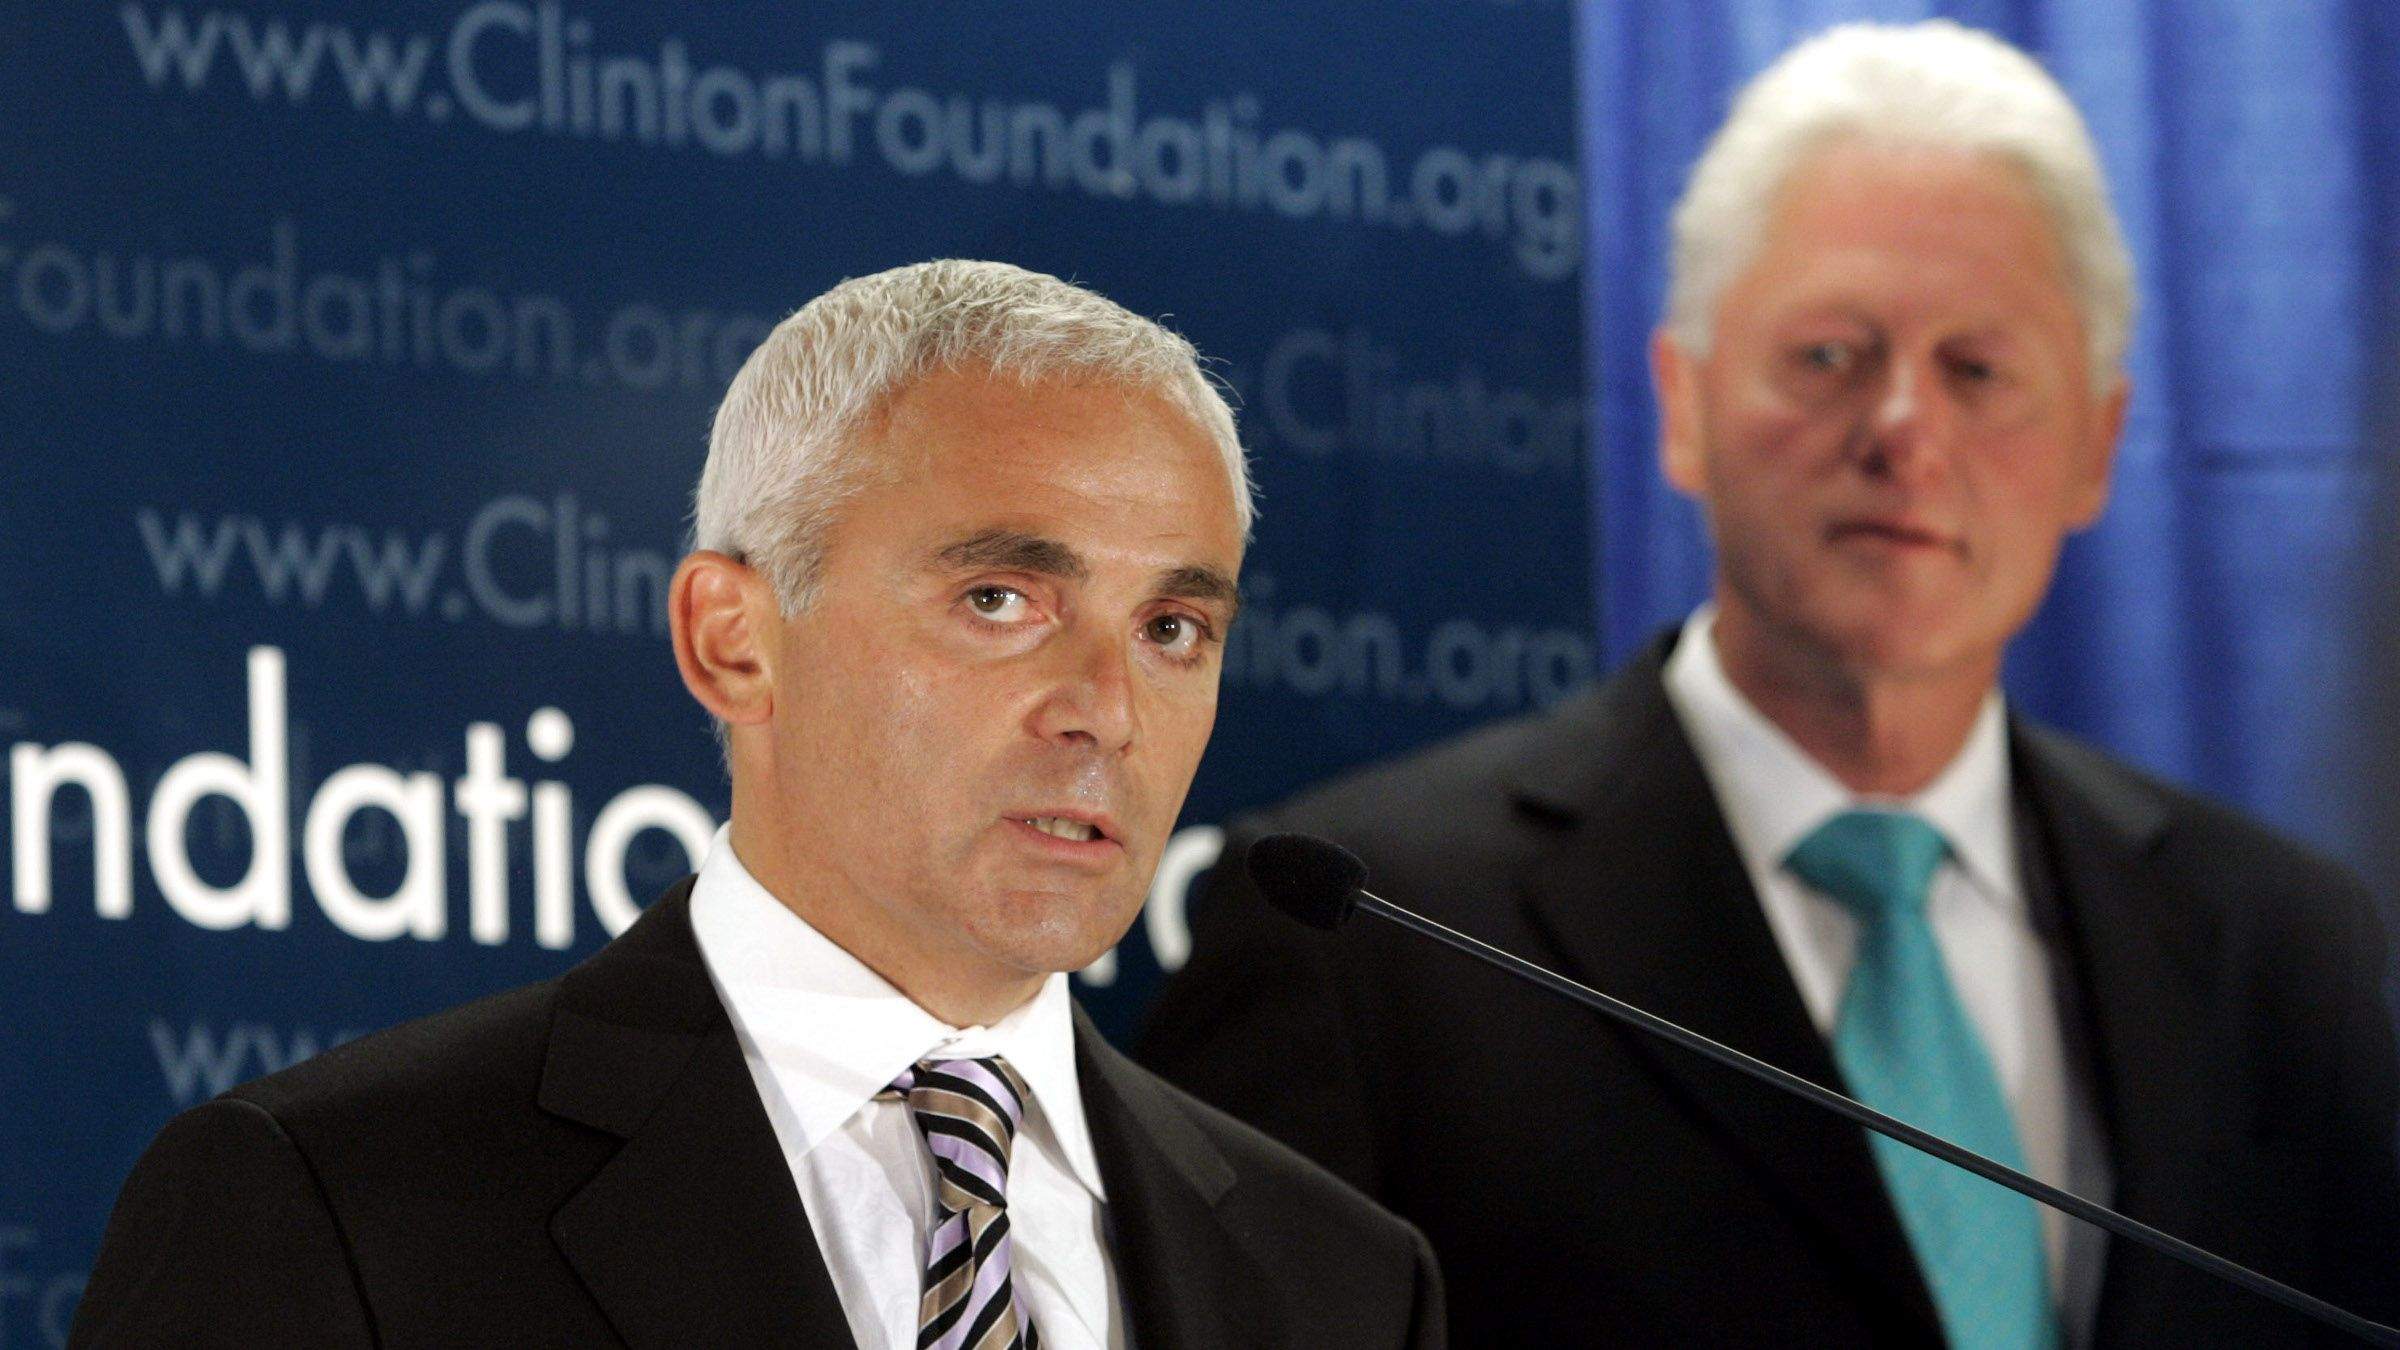 ** FILE ** In this June 21, 2007 file photo, Frank Giustra, a Canadian businessman, speaks as former President Bill Clinton looks on during a news conference in New York to announce the Clinton Foundation's launching of a new sustainable development initiative in Latin America. A donor list released on New Year's Day by the William J. Clinton Foundation shows that Giustra gave to the former president's charity.